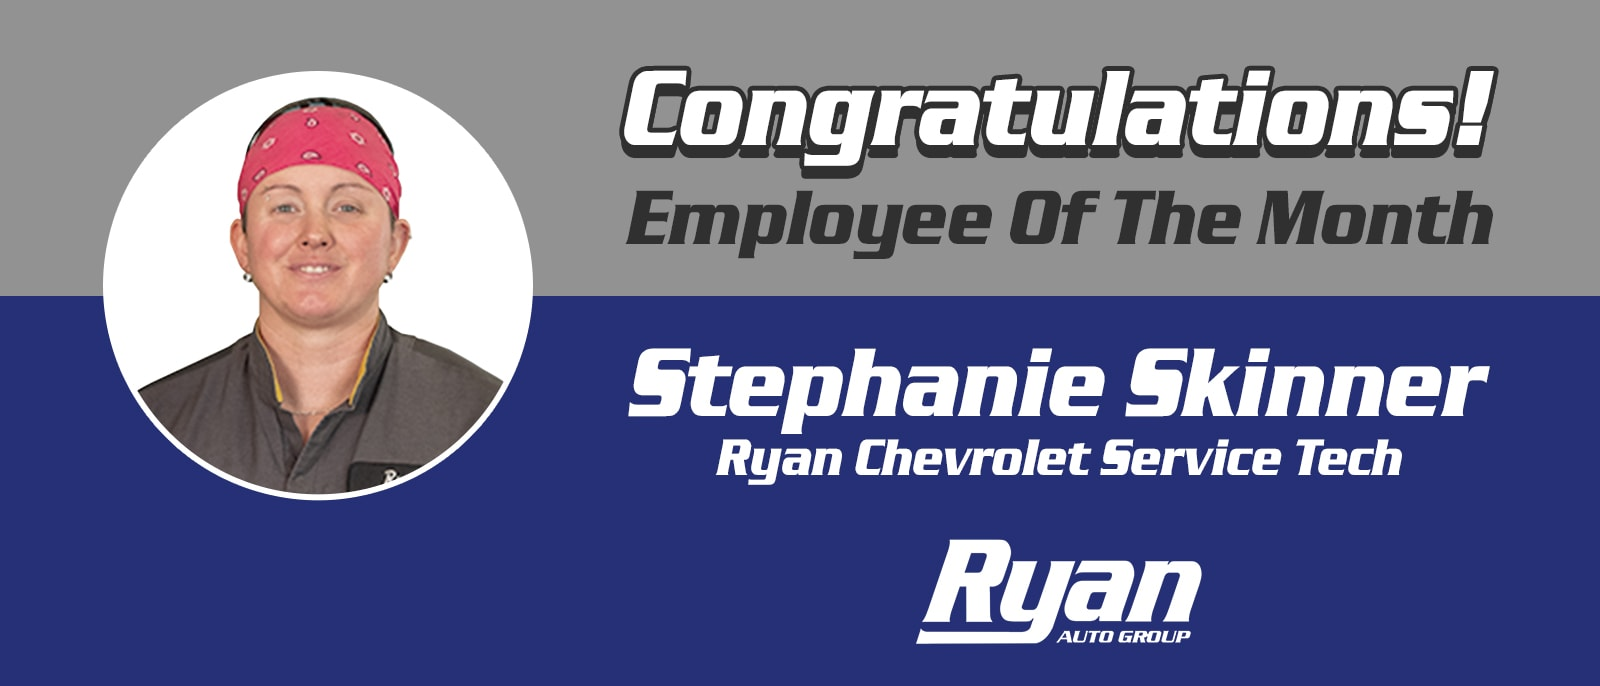 Employee of the Month - Stephanie Skinner - Monroe, LA